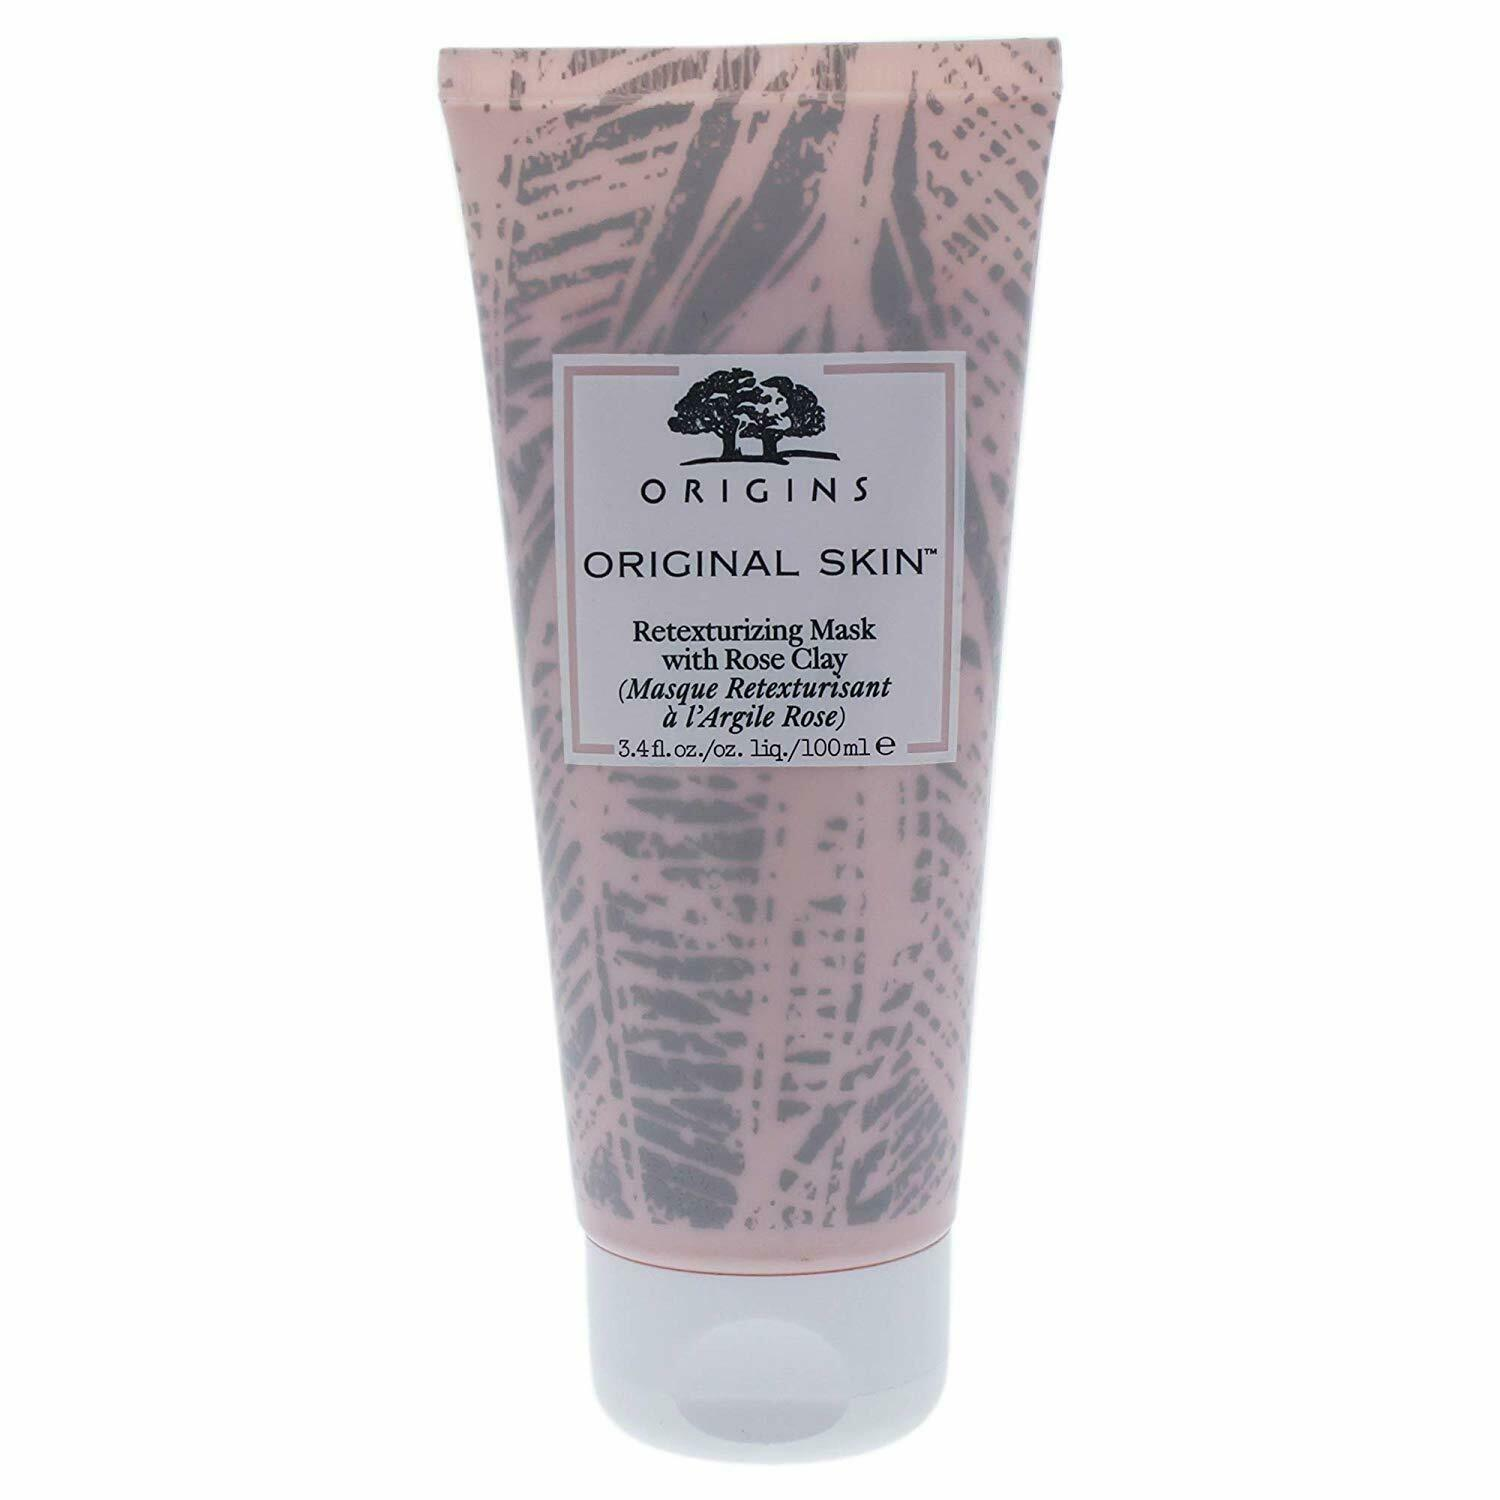 Origins Original Skin Retexturing Mask with Rose Clay, 3.4 o